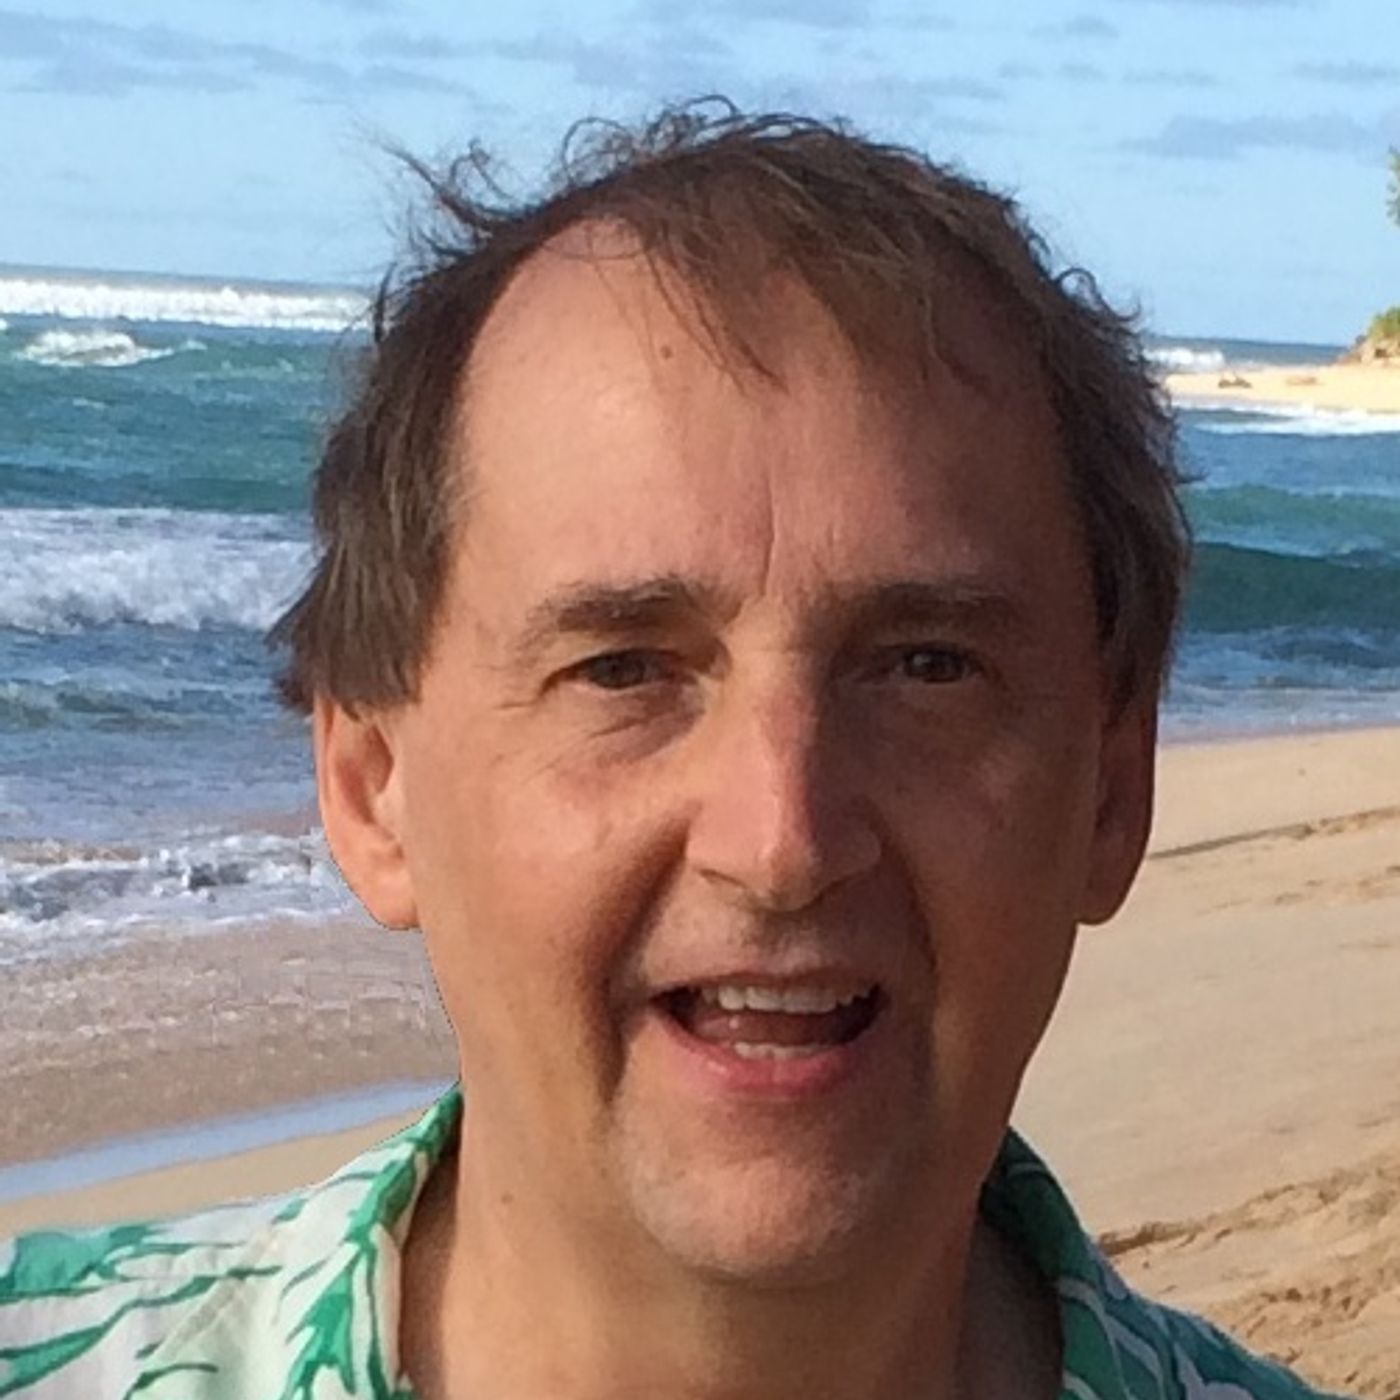 A conversation with Dr. Gaetan Chevalier on Earthing.